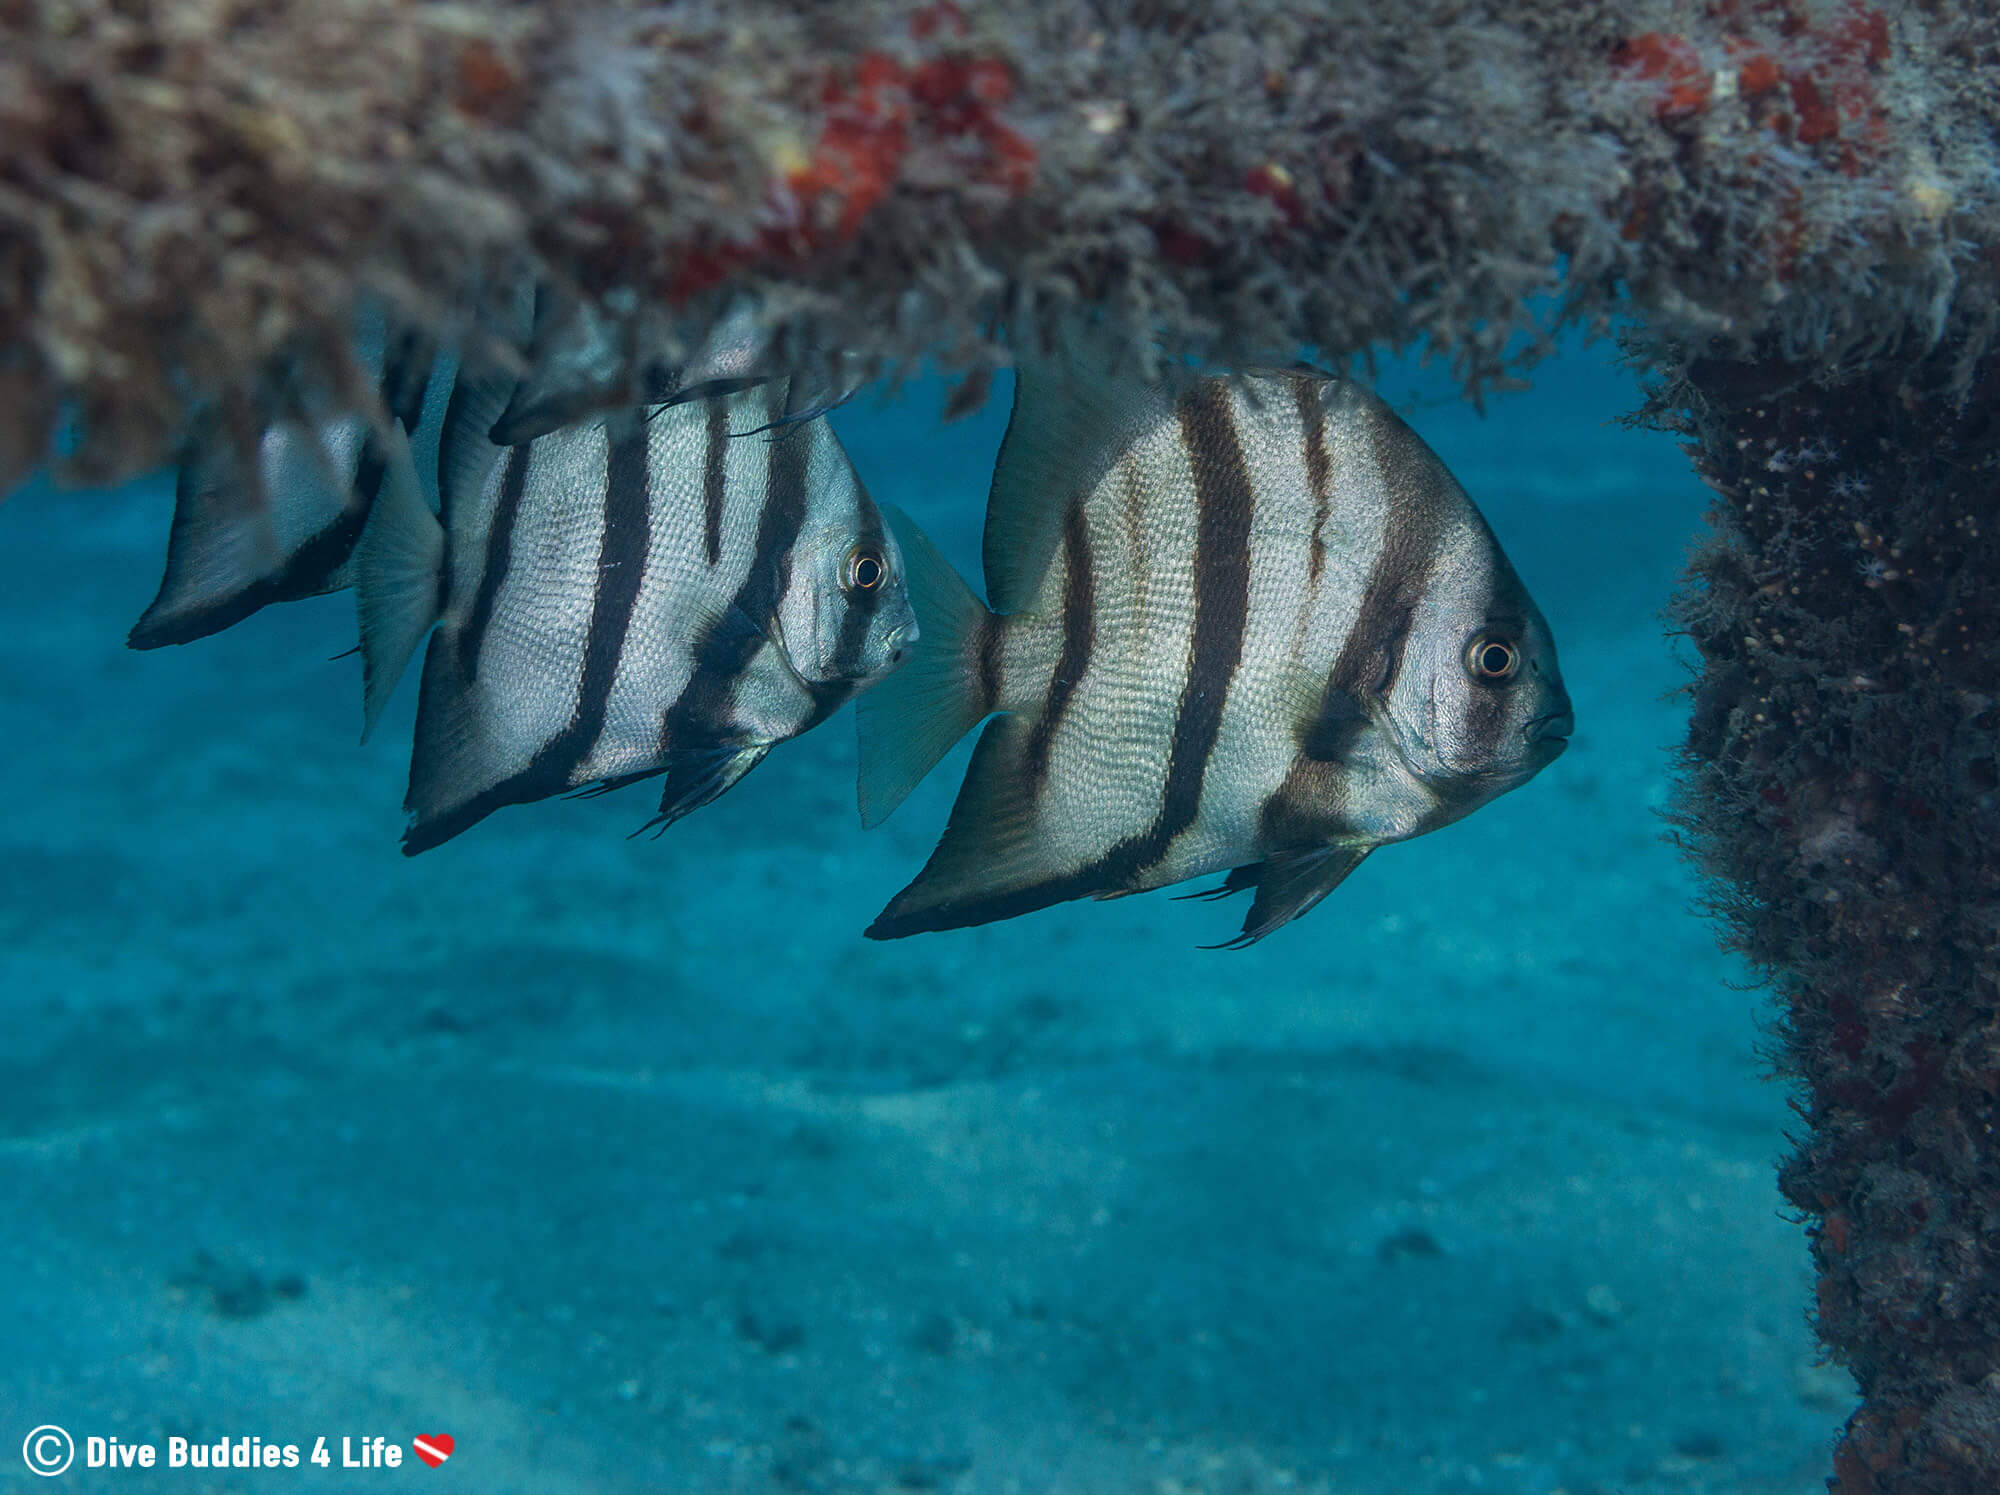 A School Of Spadefish Hiding Around BHB Columns, Florida, USA